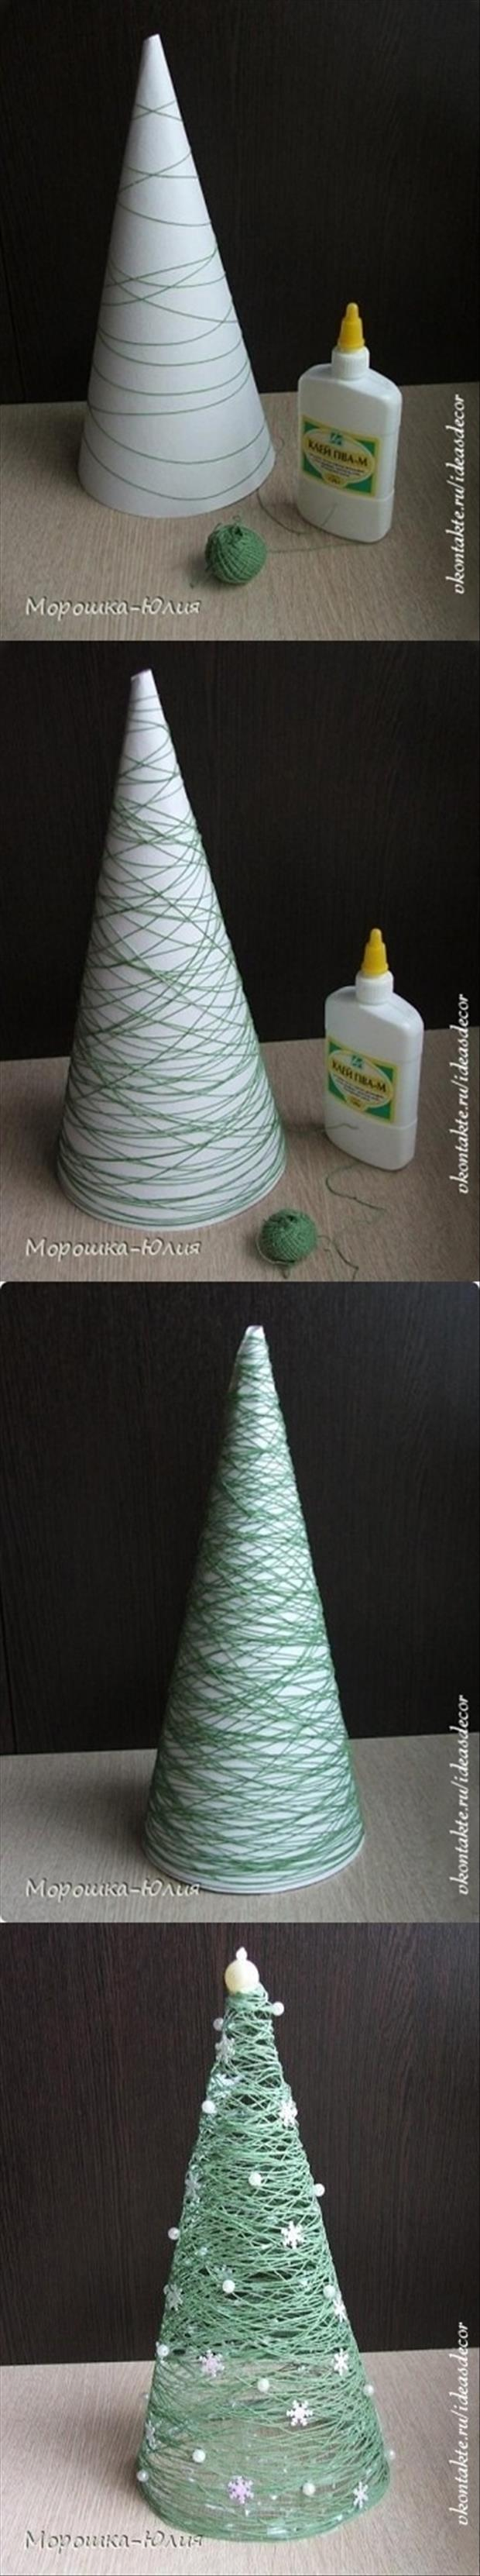 do it yourself craft ideas (3)